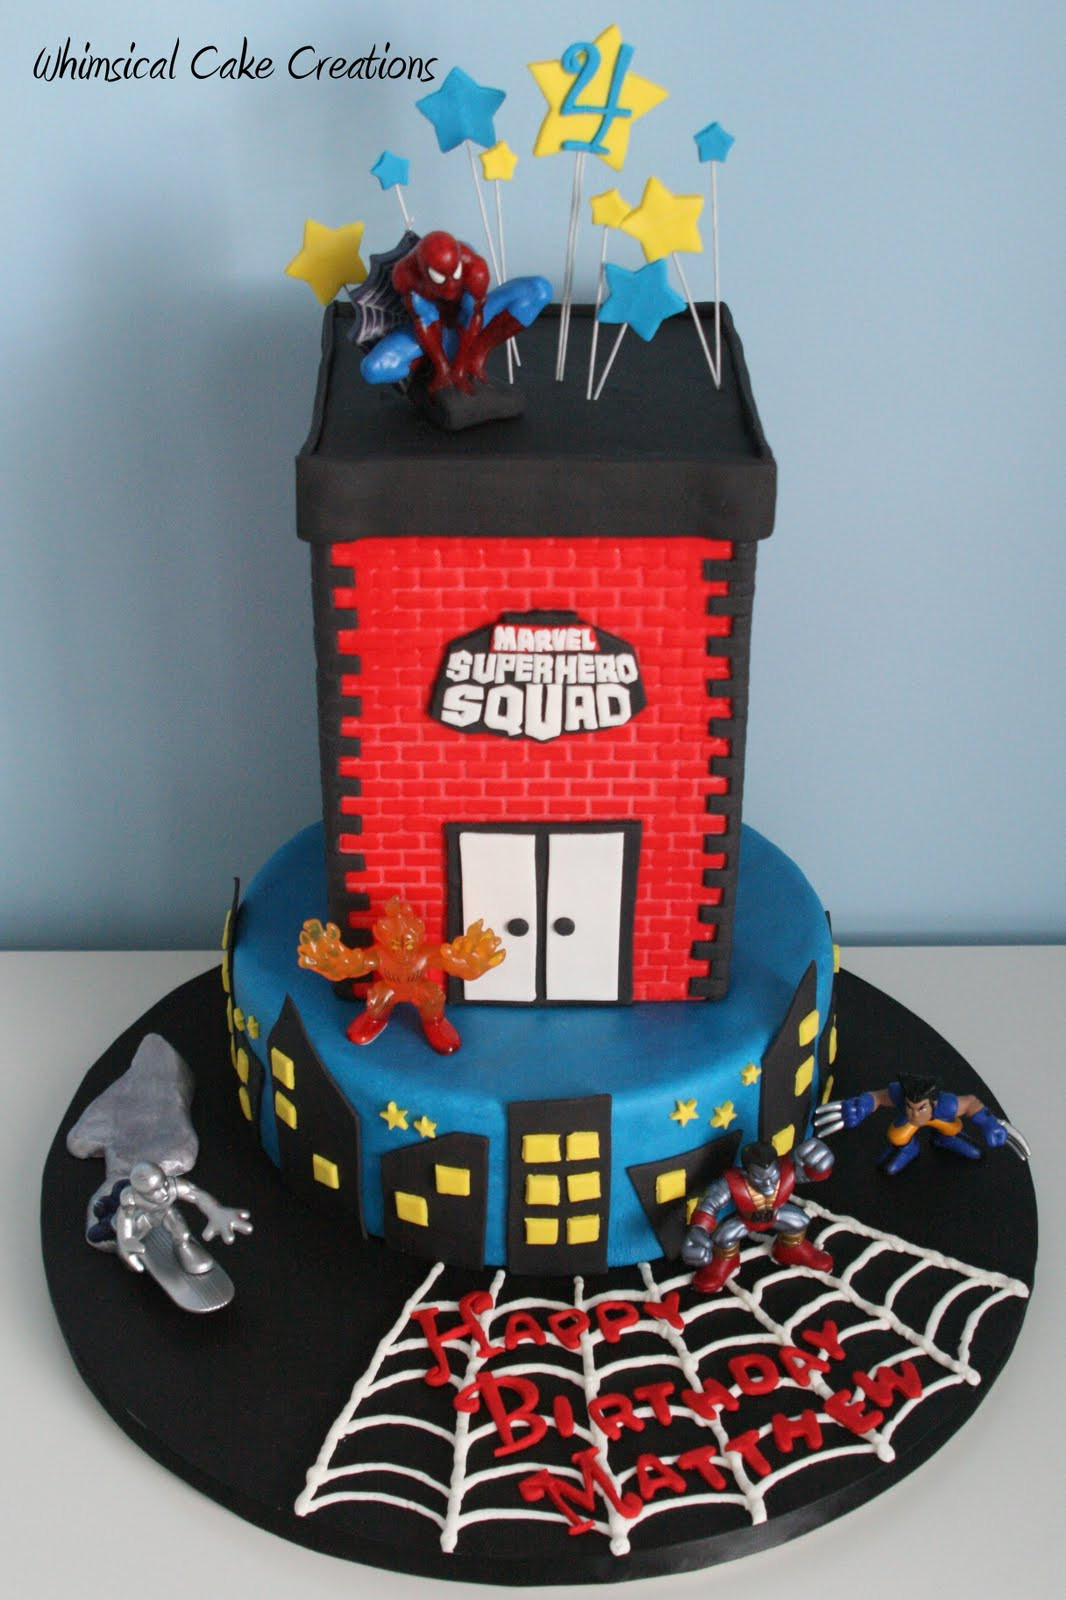 Best ideas about Superhero Birthday Cake . Save or Pin WhimsicalCreations Super Hero Squad Birthday Cake Now.